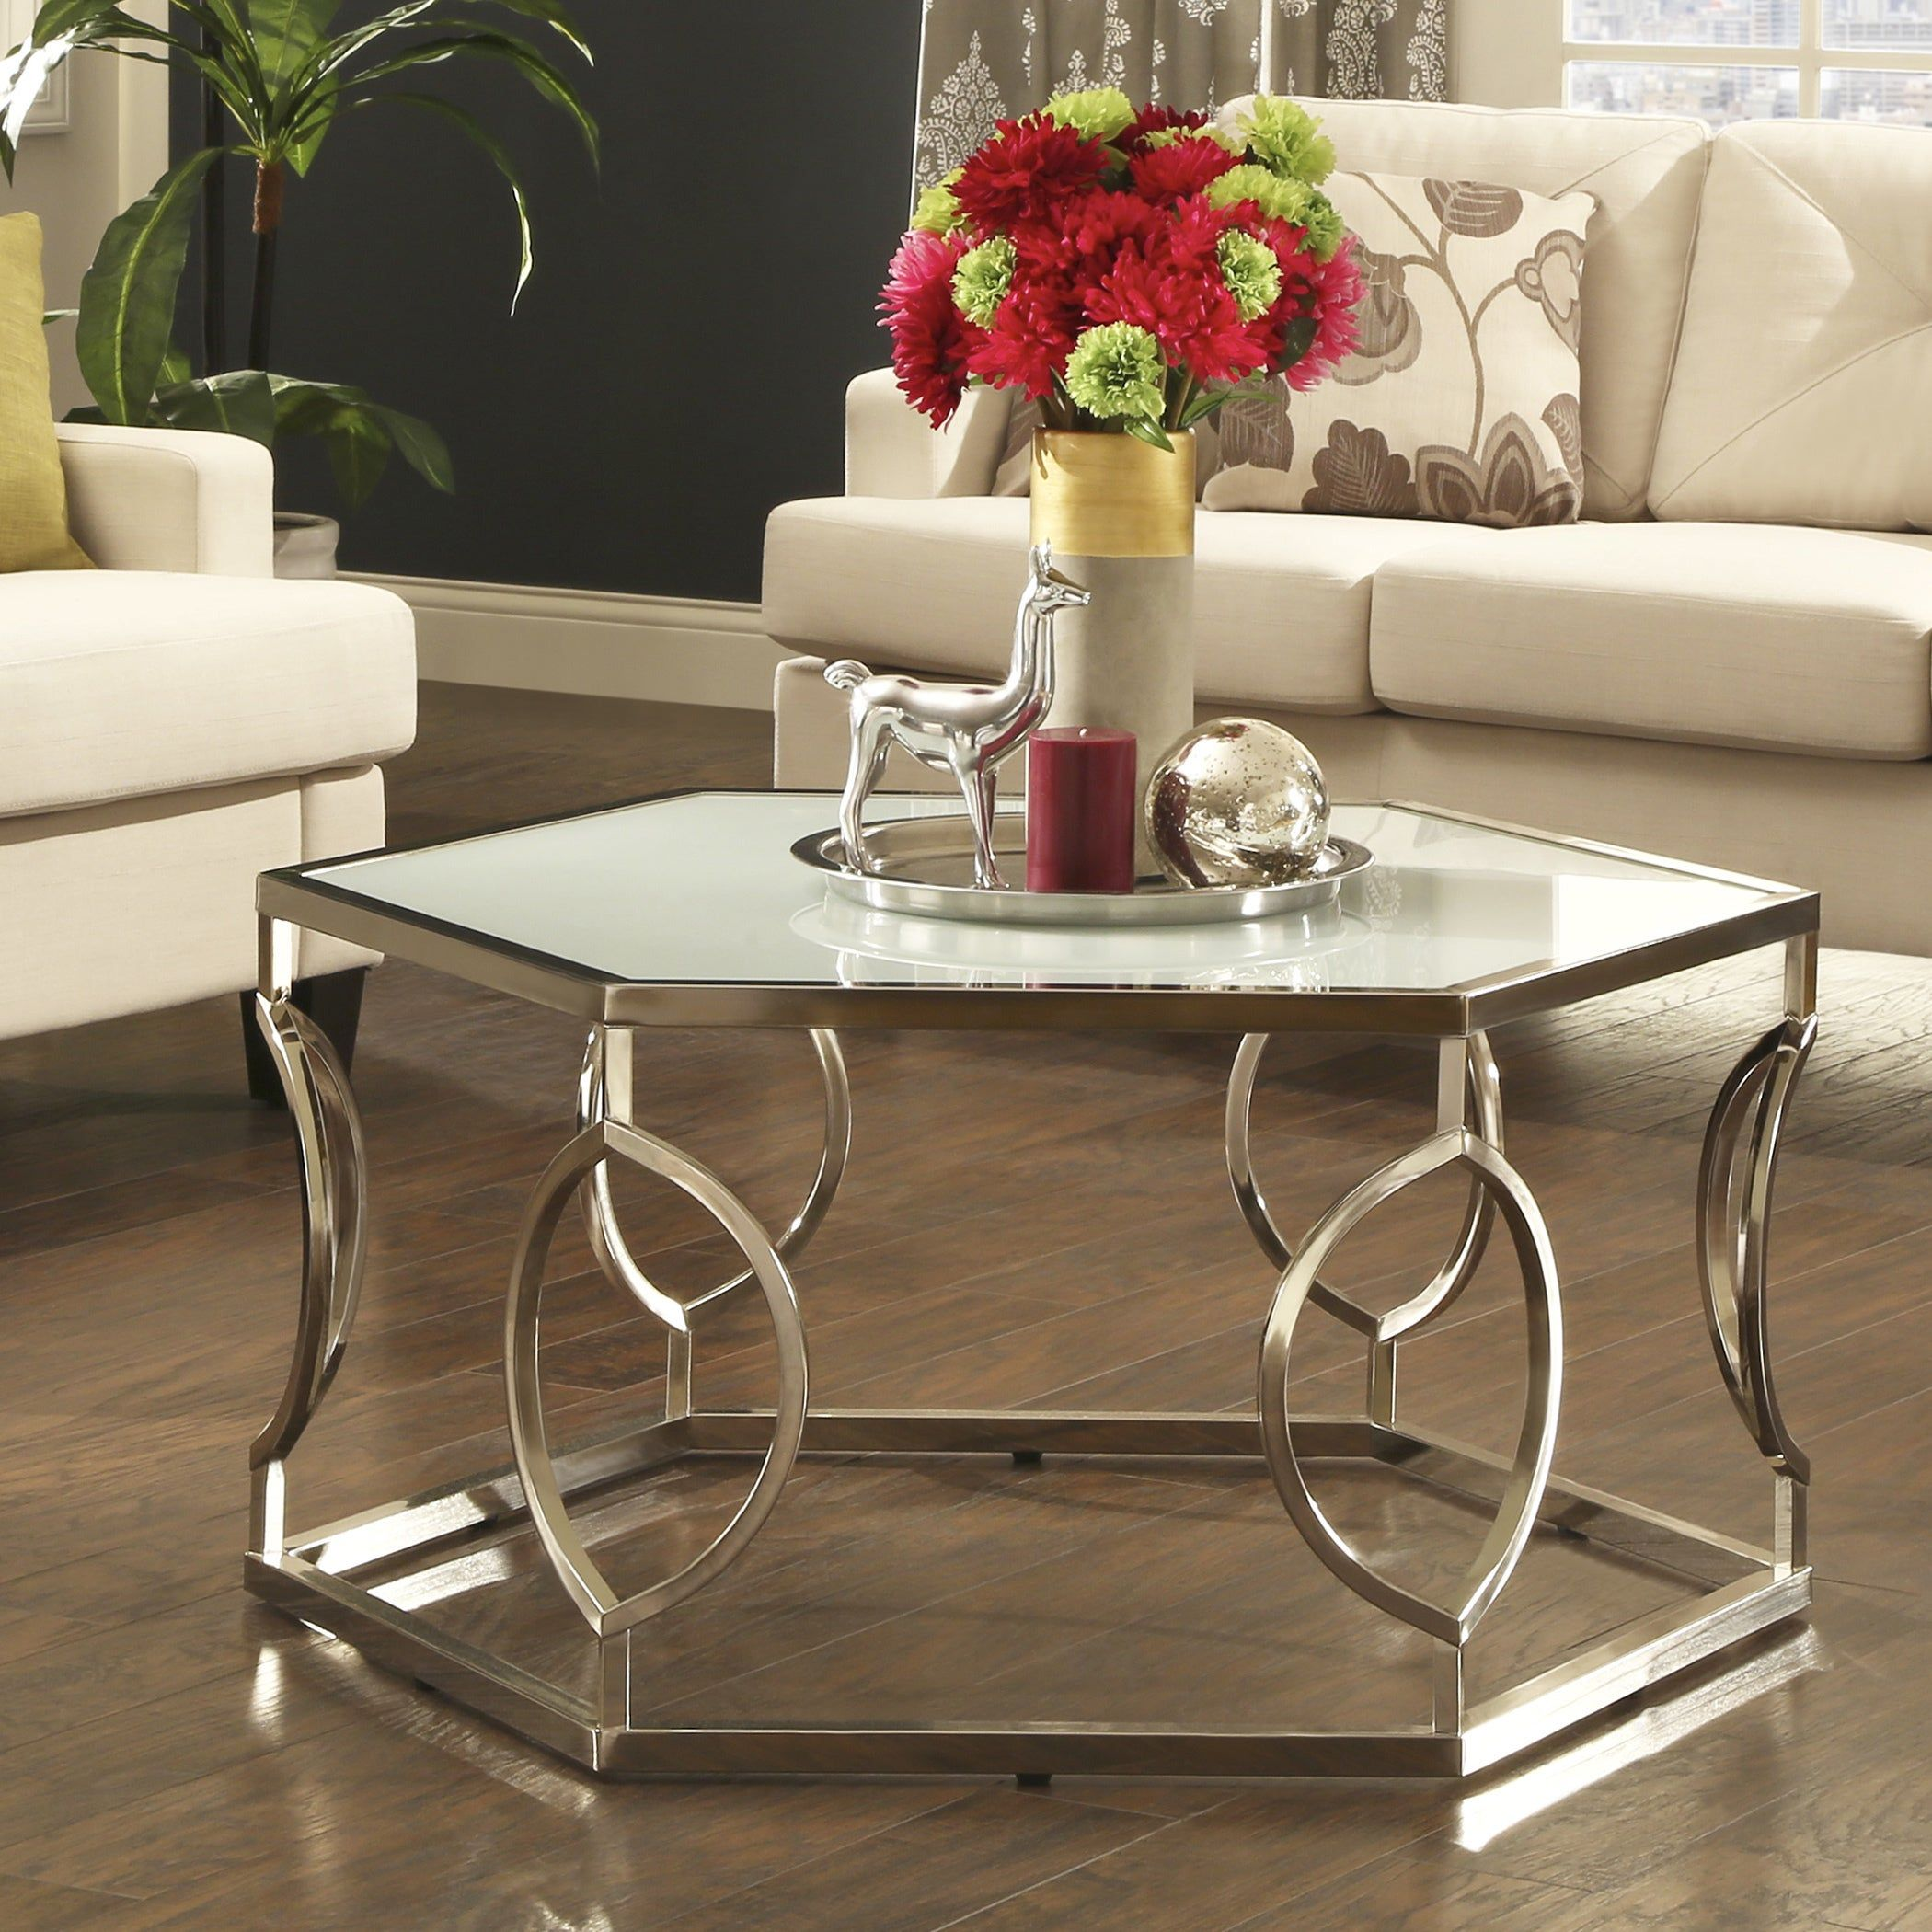 Overstock Com Online Shopping Bedding Furniture Electronics Jewelry Clothing More Glass Cocktail Tables Contemporary Coffee Table Coffee Table [ 2100 x 2100 Pixel ]